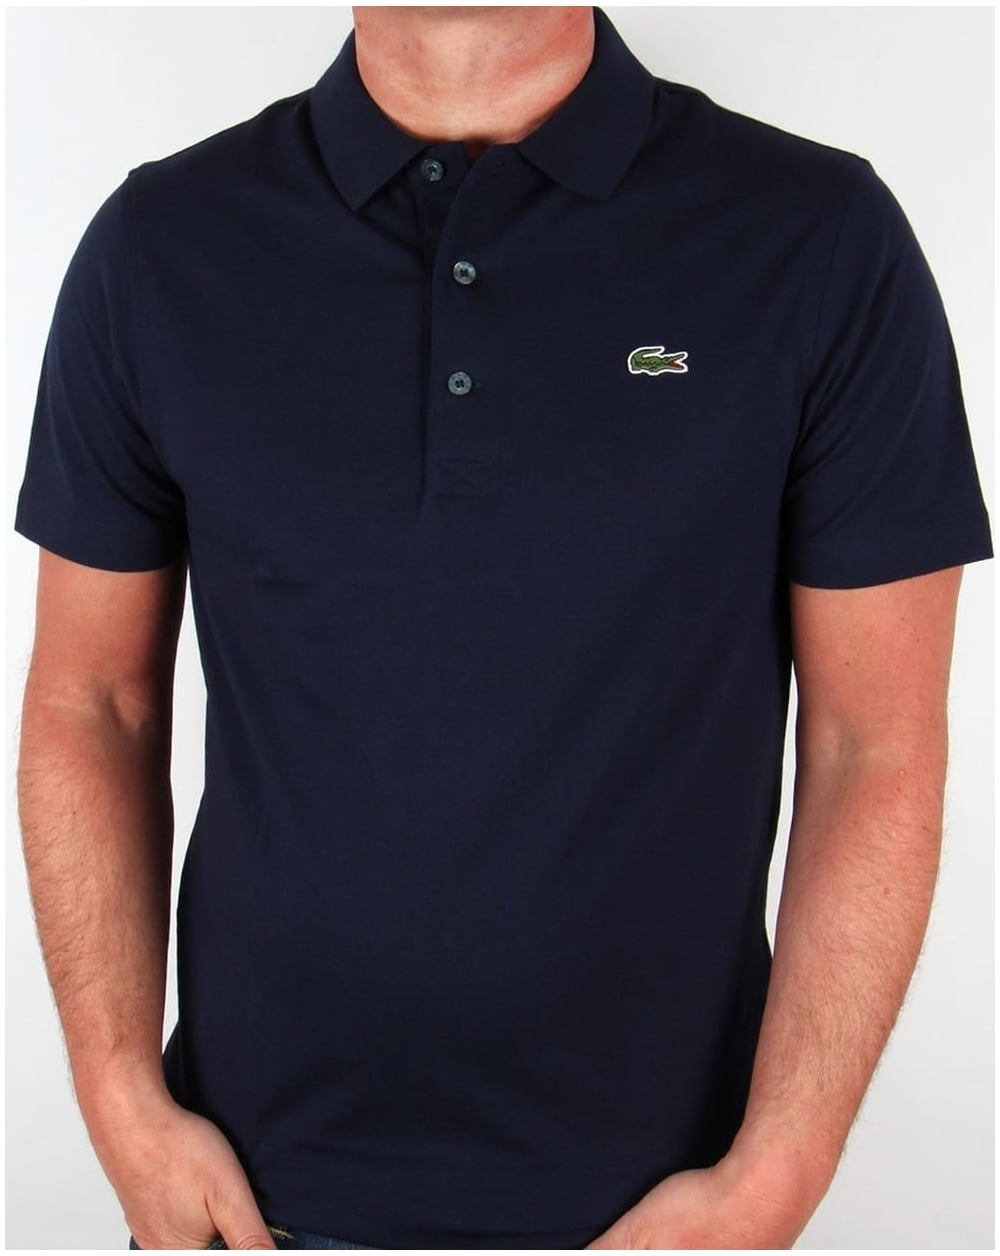 Lacoste polo shirt navy short sleeve old skool retro for Discount lacoste mens polo shirts